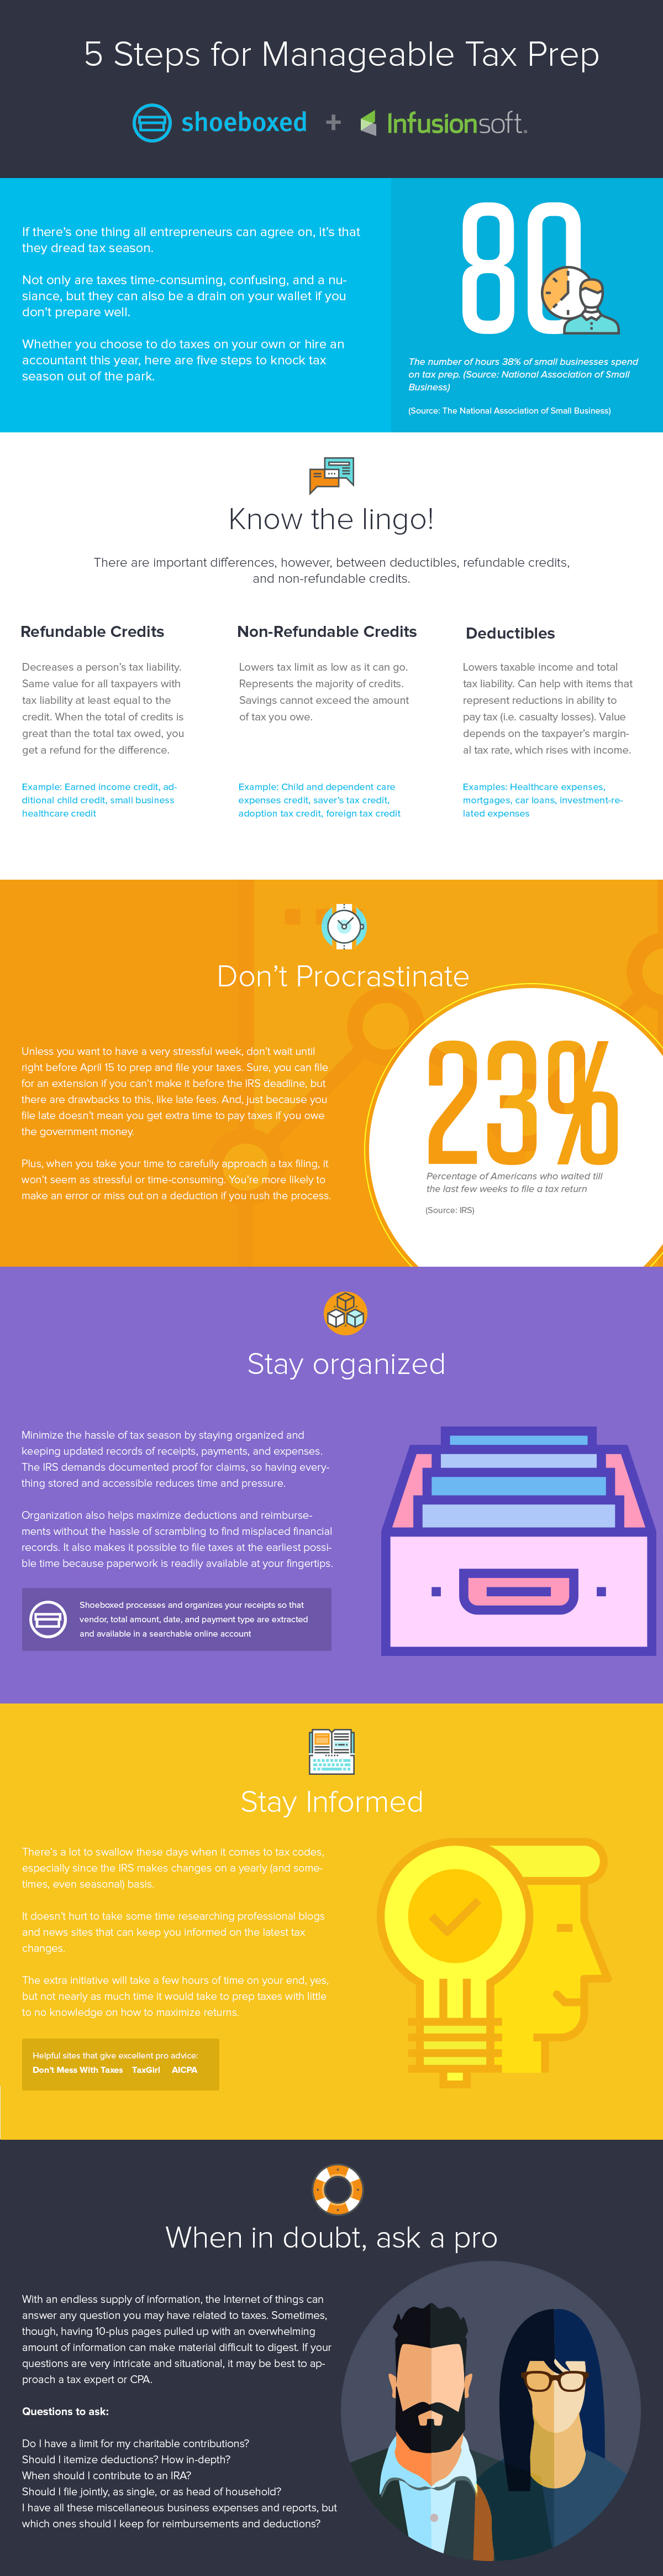 tax-prep-infusionsoft_infographic.jpeg